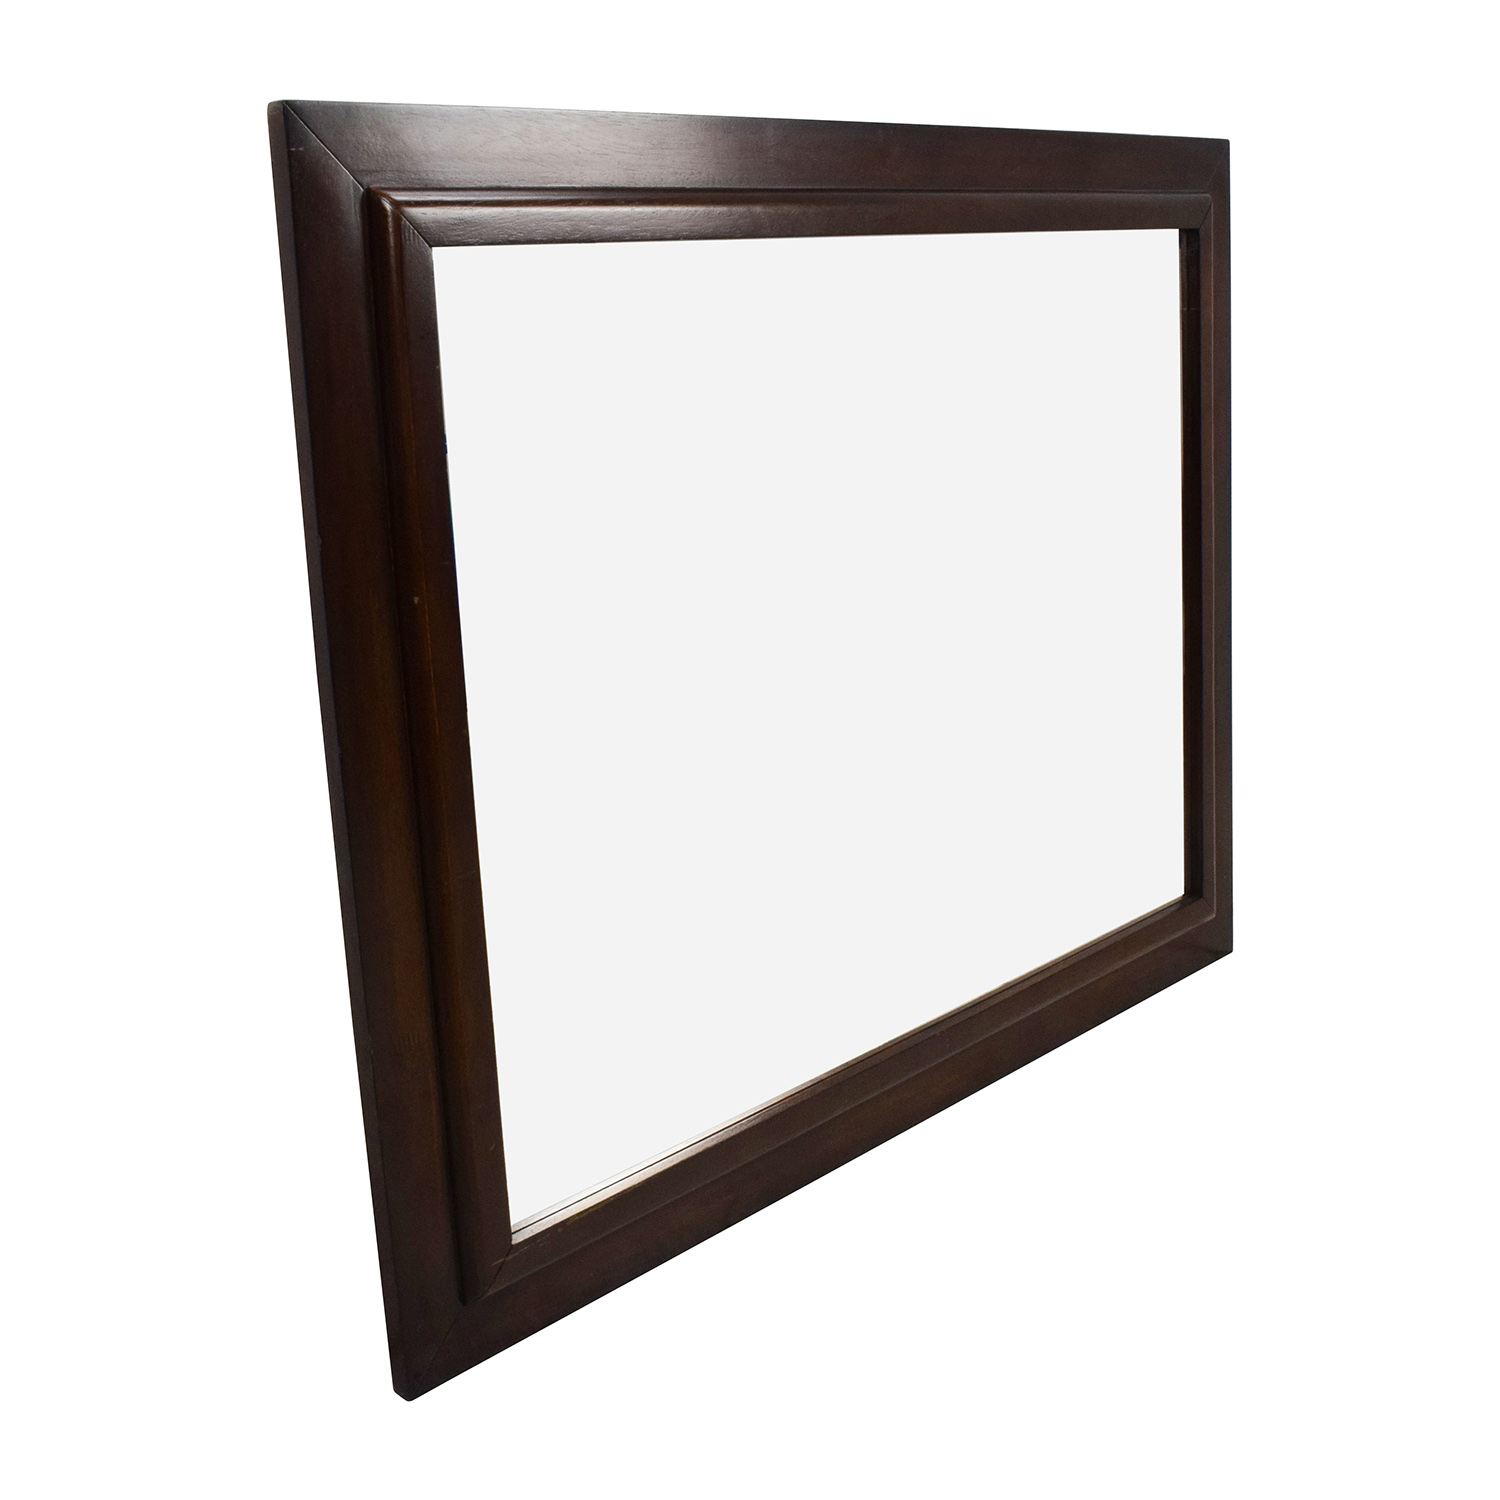 80 off large square wood framed wall mirror decor for Tall framed mirror